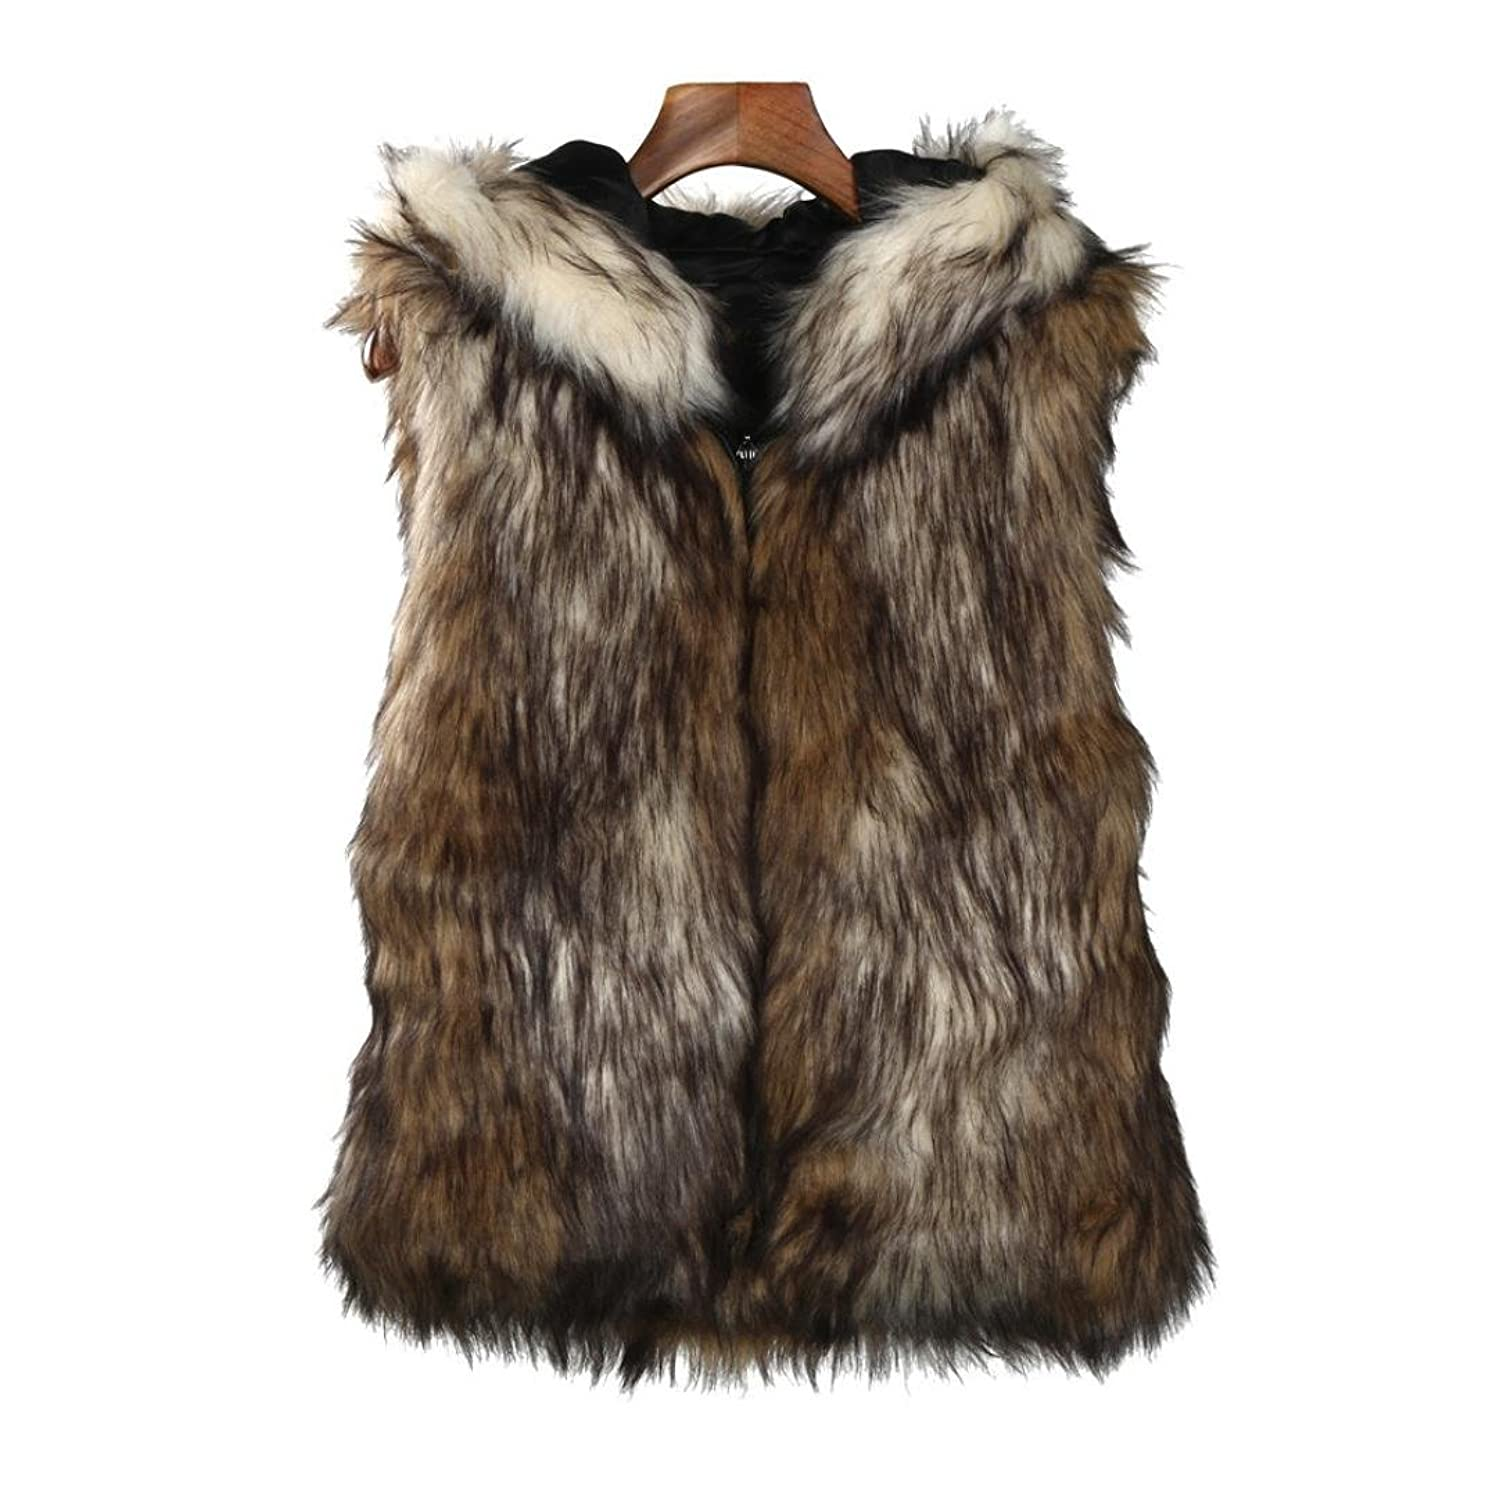 Creazy Women Faux Fur Vest Jacket Sleeveless Winter Warm Coat Hooded Waistcoat Gilet